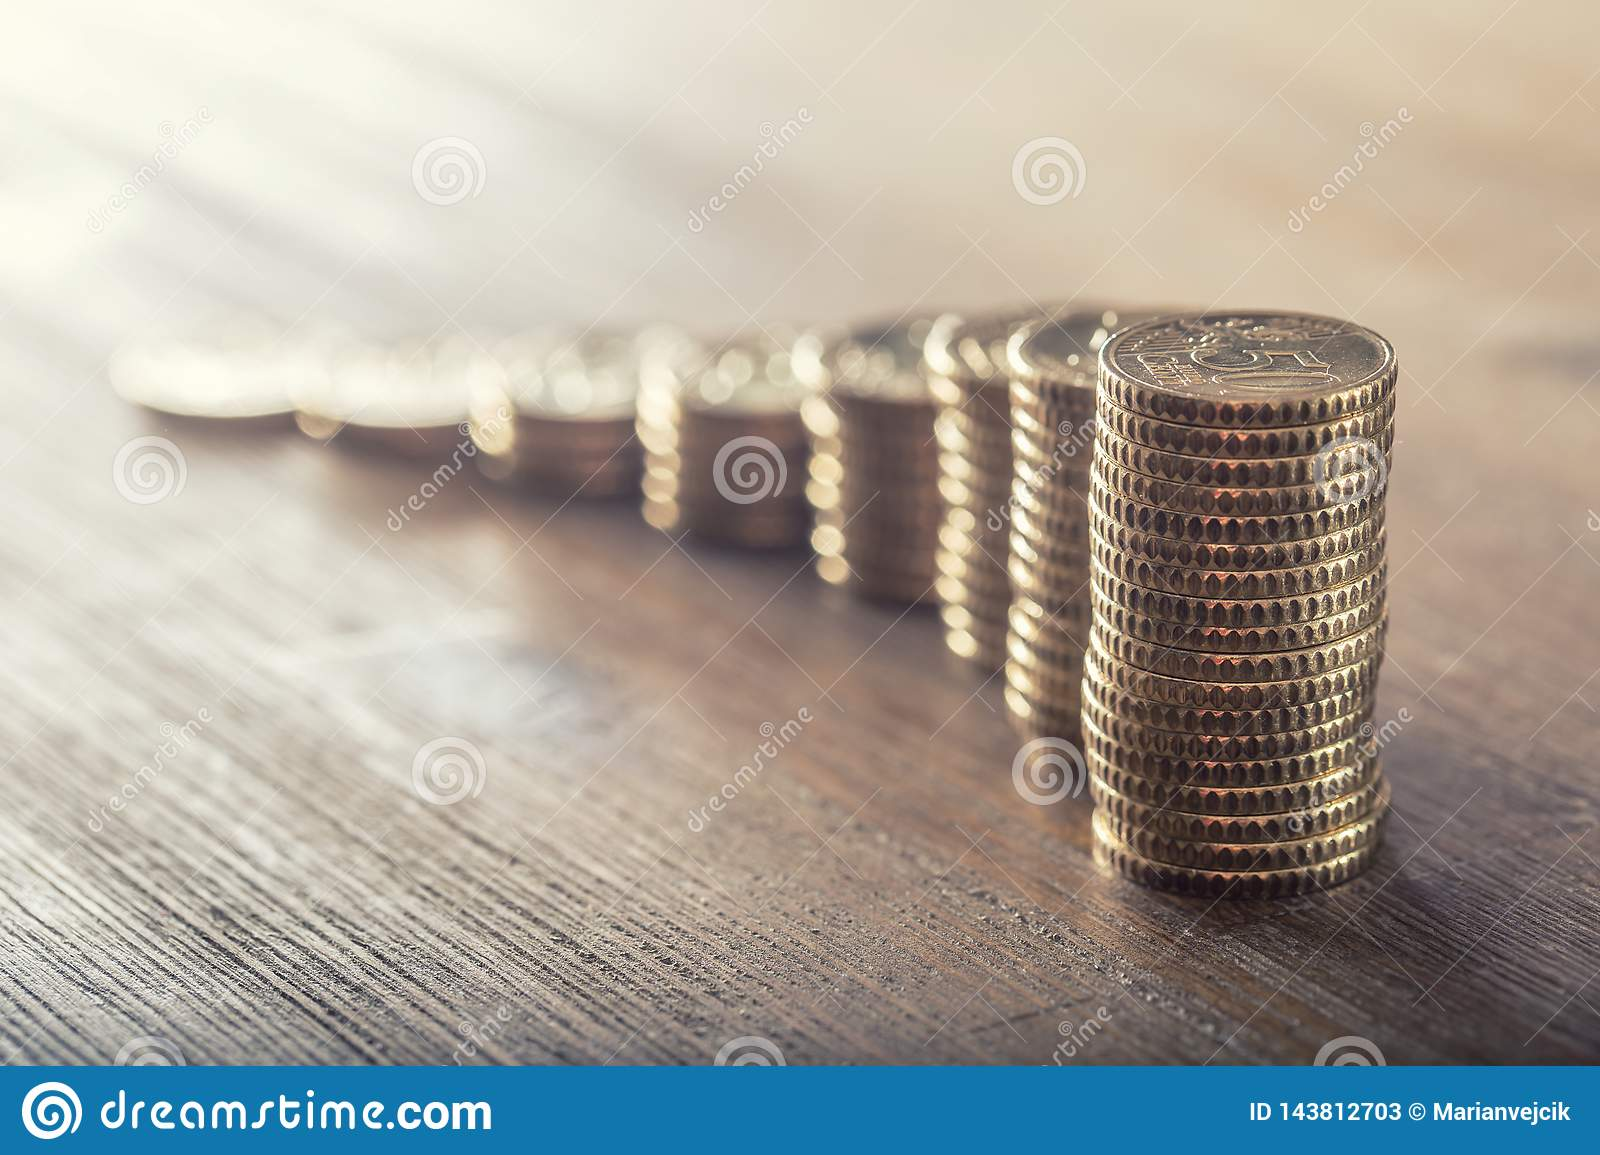 Euro coisn on a wooden table with a growth effect. Close-up european money and currency